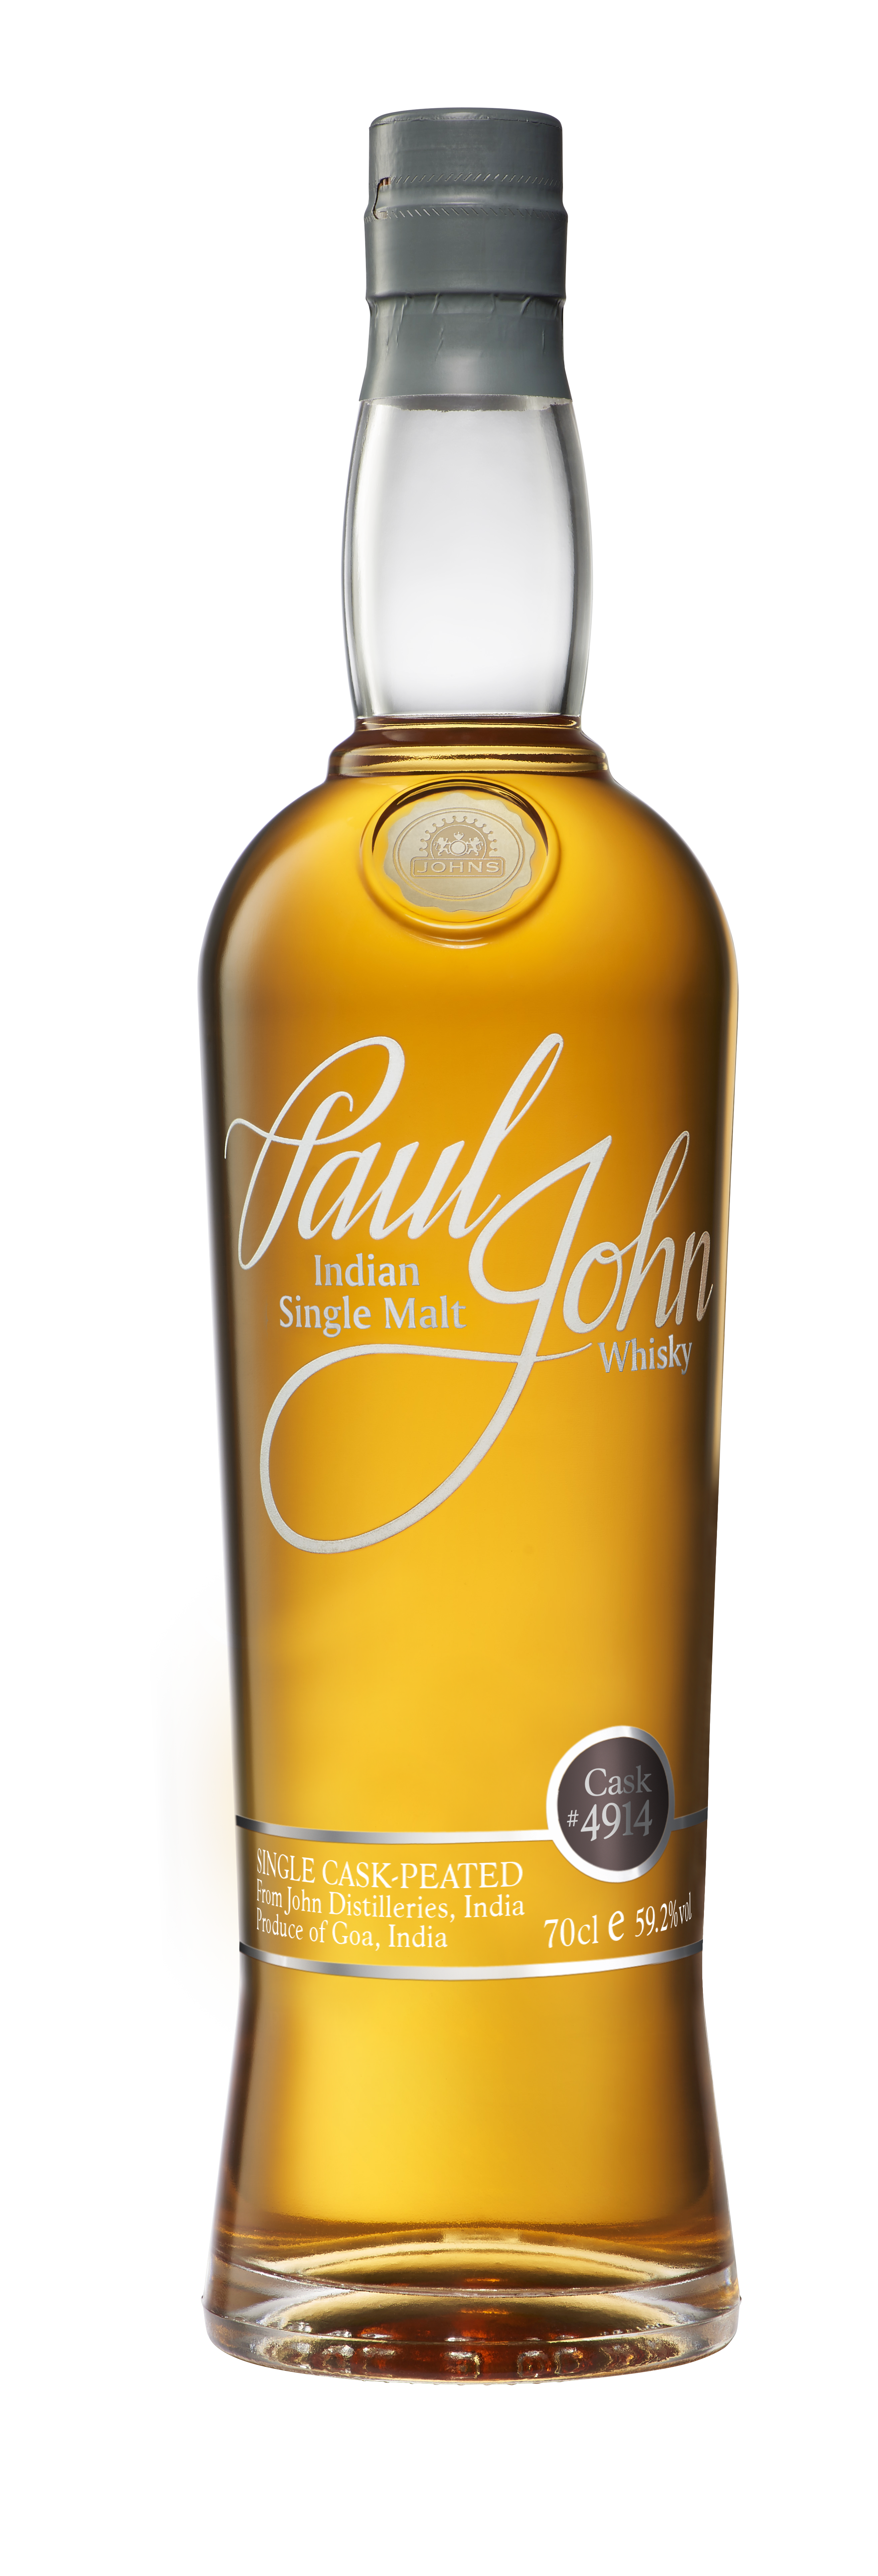 Paul John Single Cask bottle 01